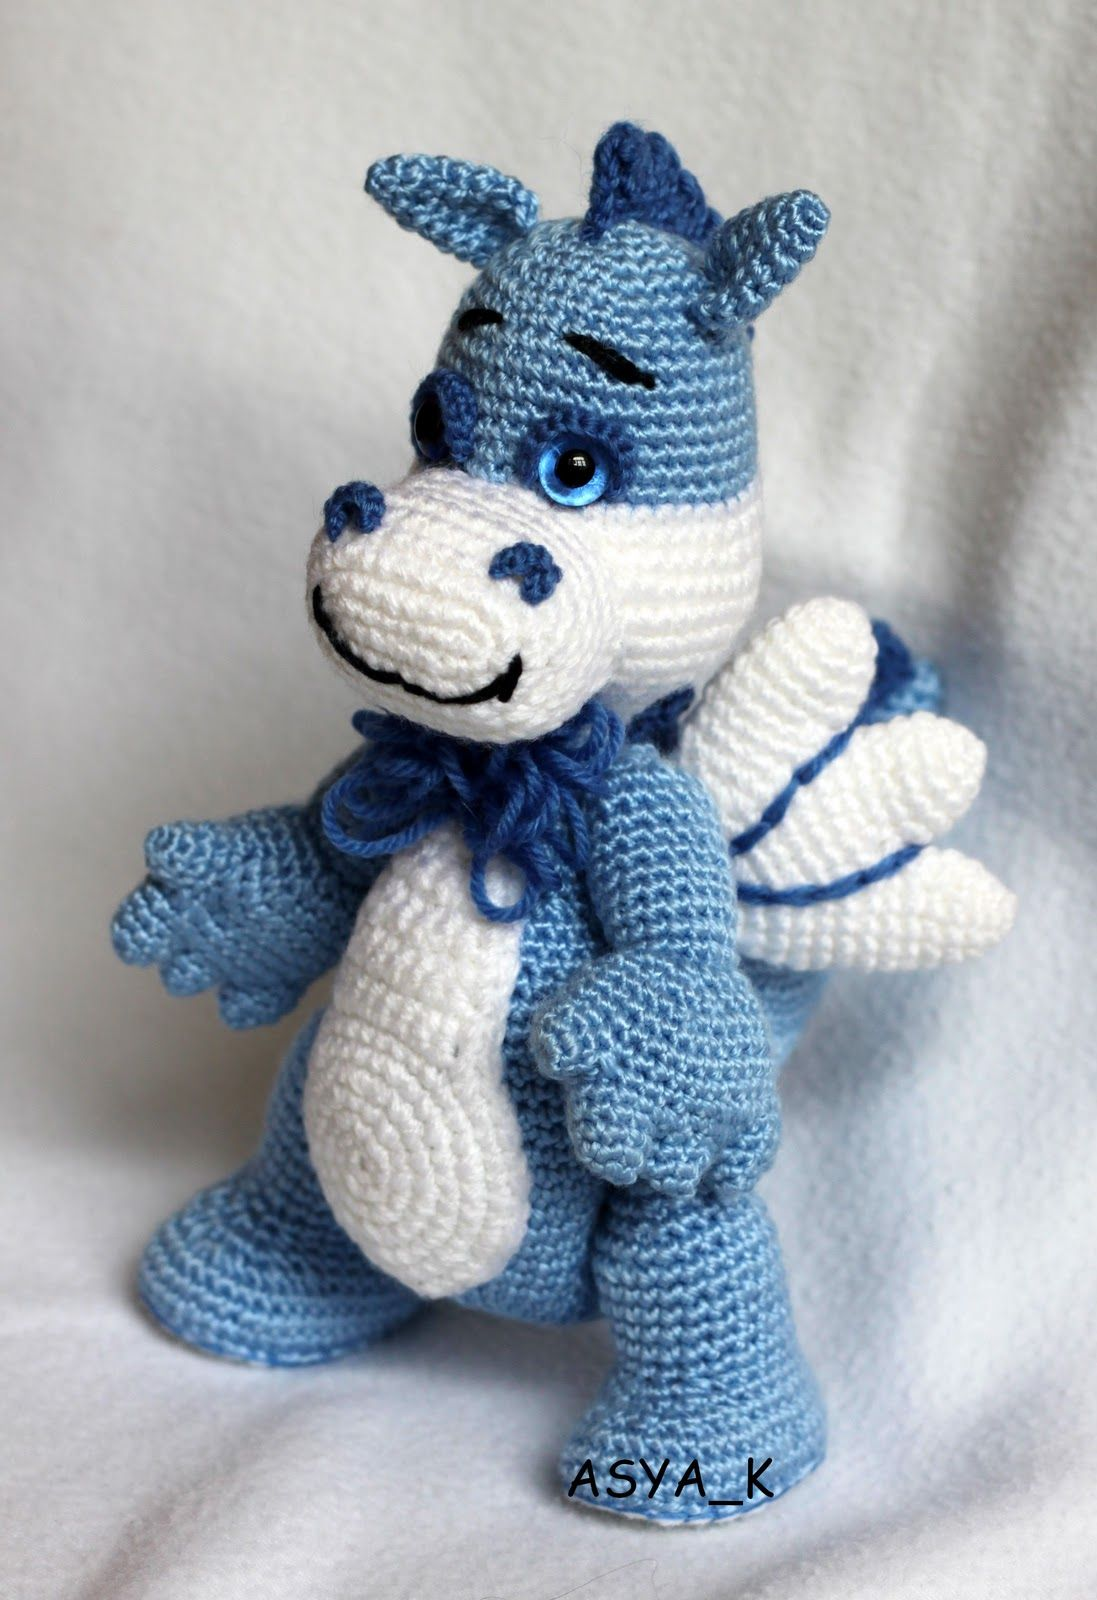 Free Crochet Dragon Afghan Pattern : 1000+ ideas about Crochet Dragon on Pinterest Dragon ...